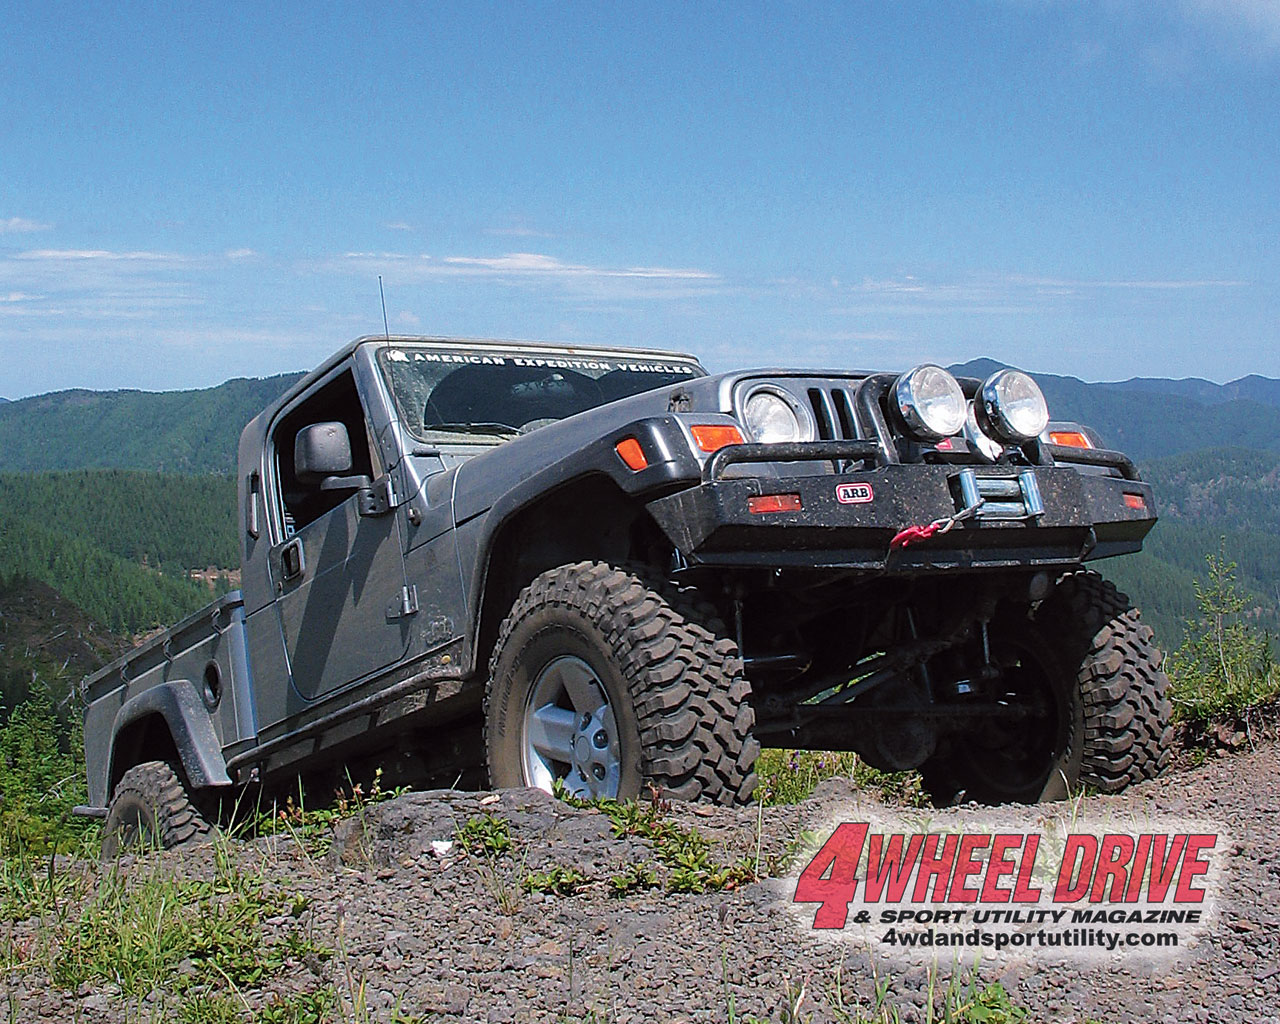 0507 4wd+oregon trail tj brute+large